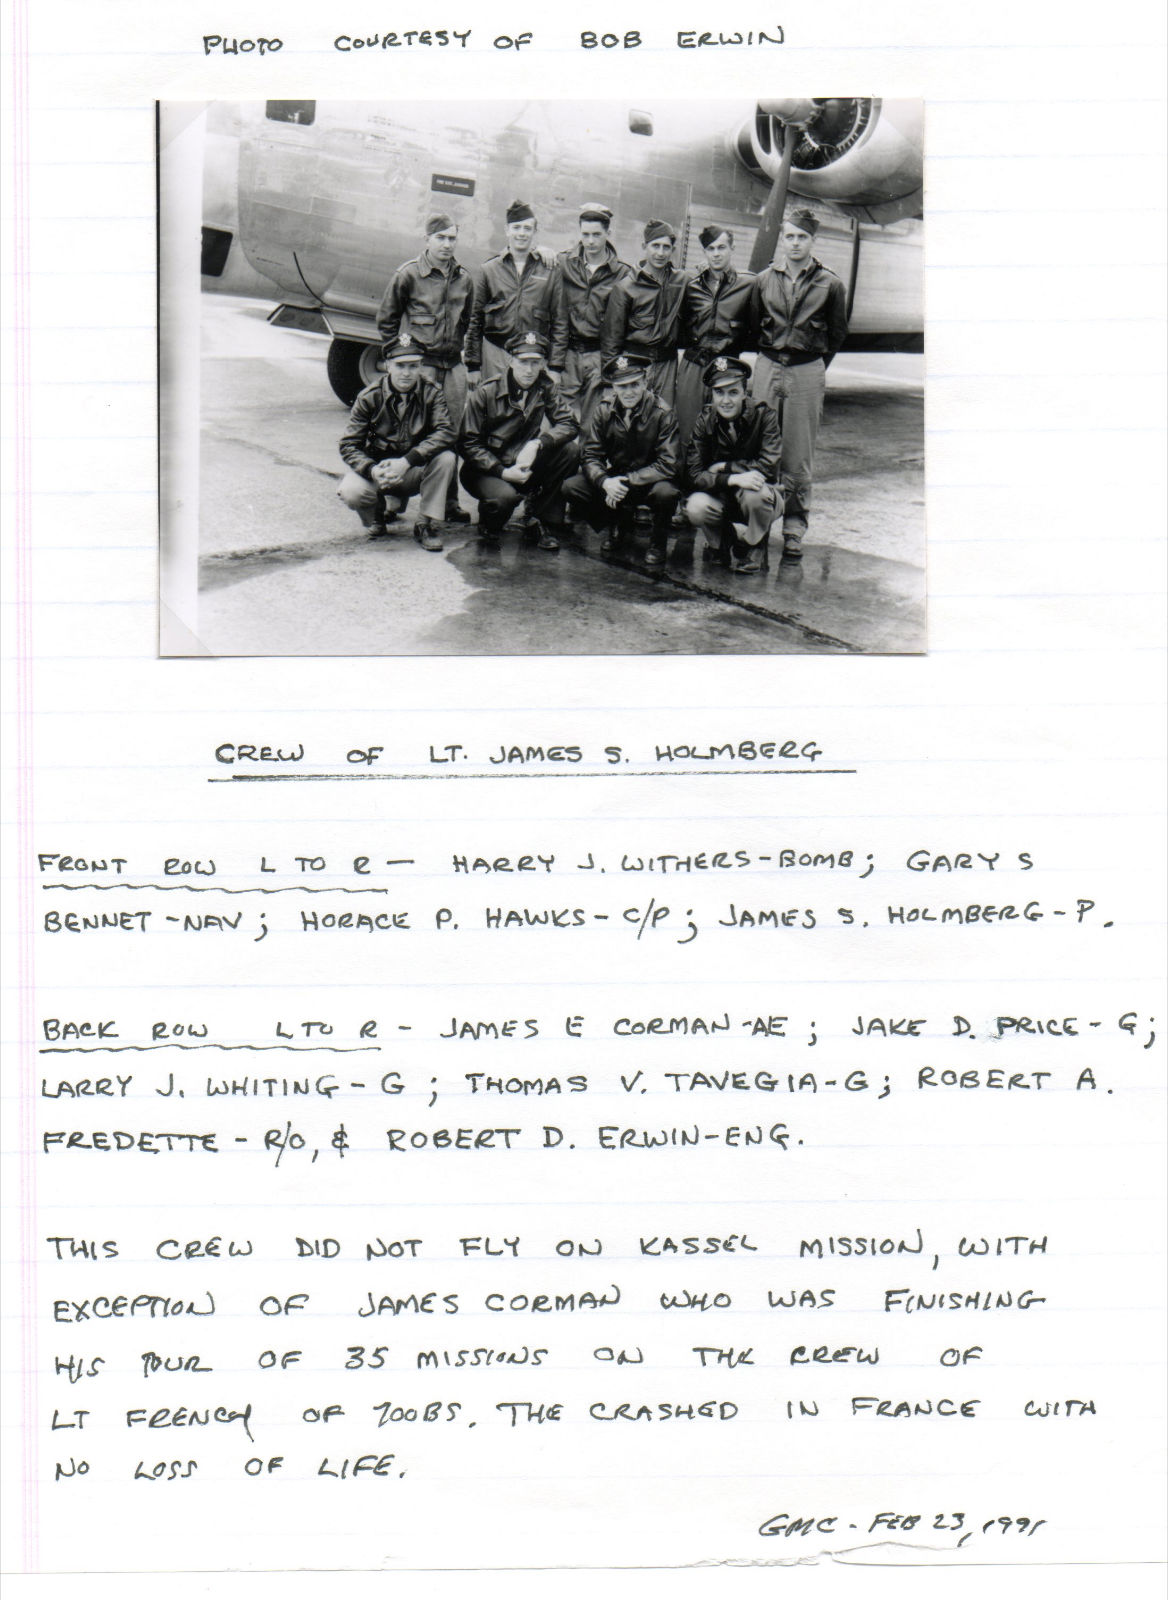 Holmberg Crew, James Corman's regular crew. Notes above are by Kassel Mission Historian Emeritus, the late Goerge Collar, 702nd Bombardier on the Schaen Crew.